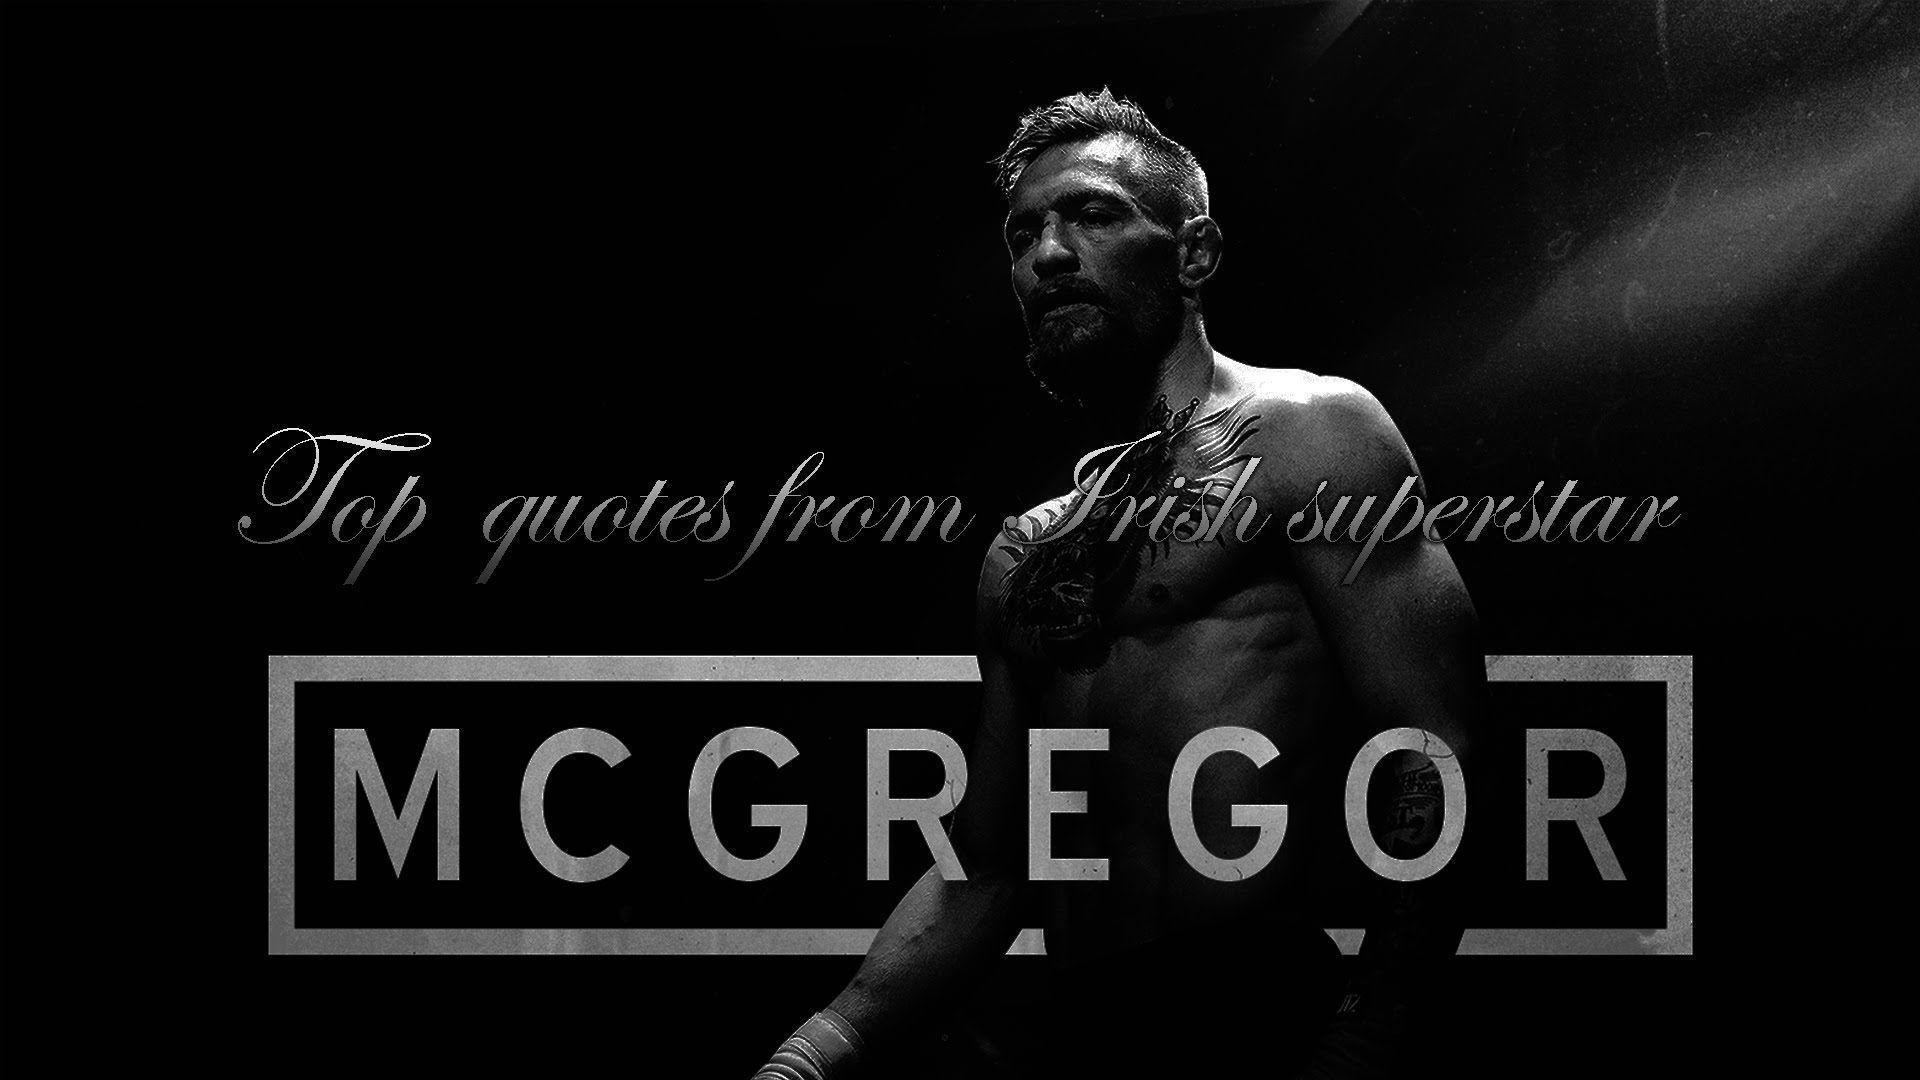 Connor Mcgregor Quote Wallpaper Conor Mcgregor Wallpapers Wallpaper Cave